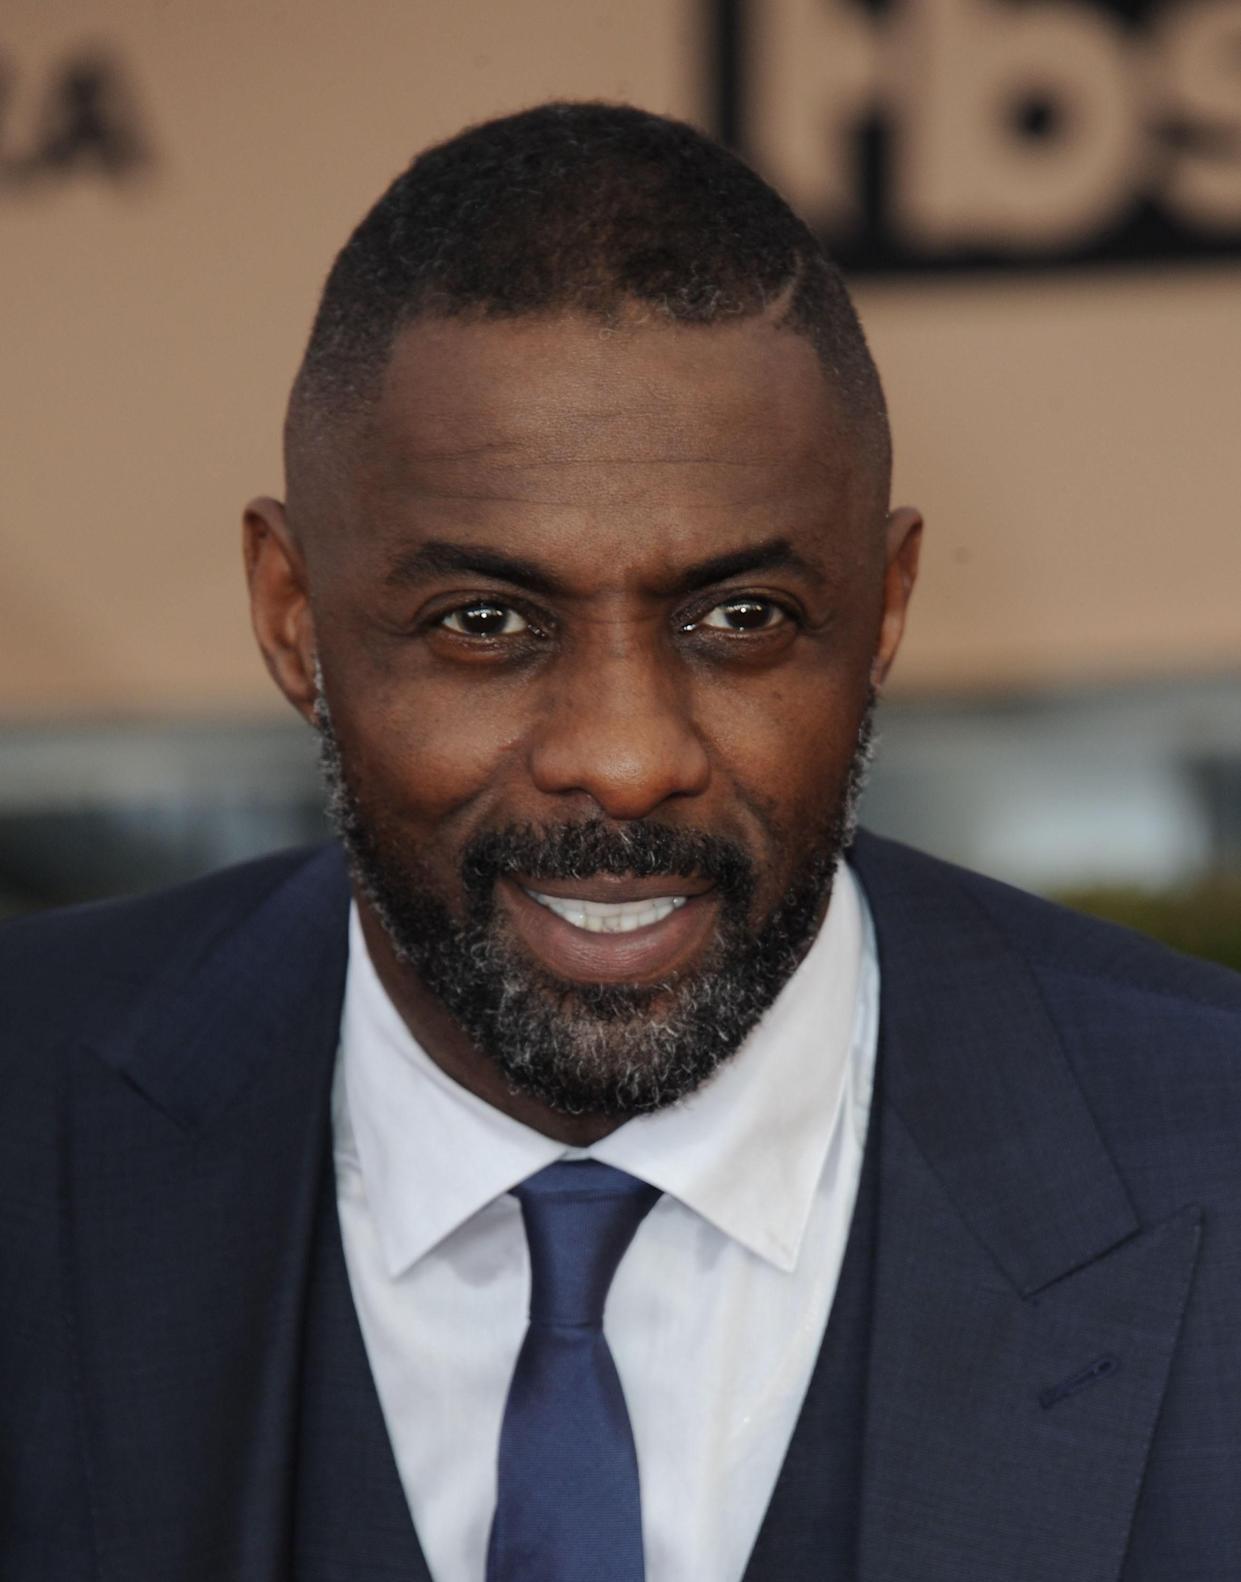 Idris Elba, seen here at the 2016 SAG Awards, is a popular choice for the next James Bond. (Photo: Dee Cercone/Everett Collection)